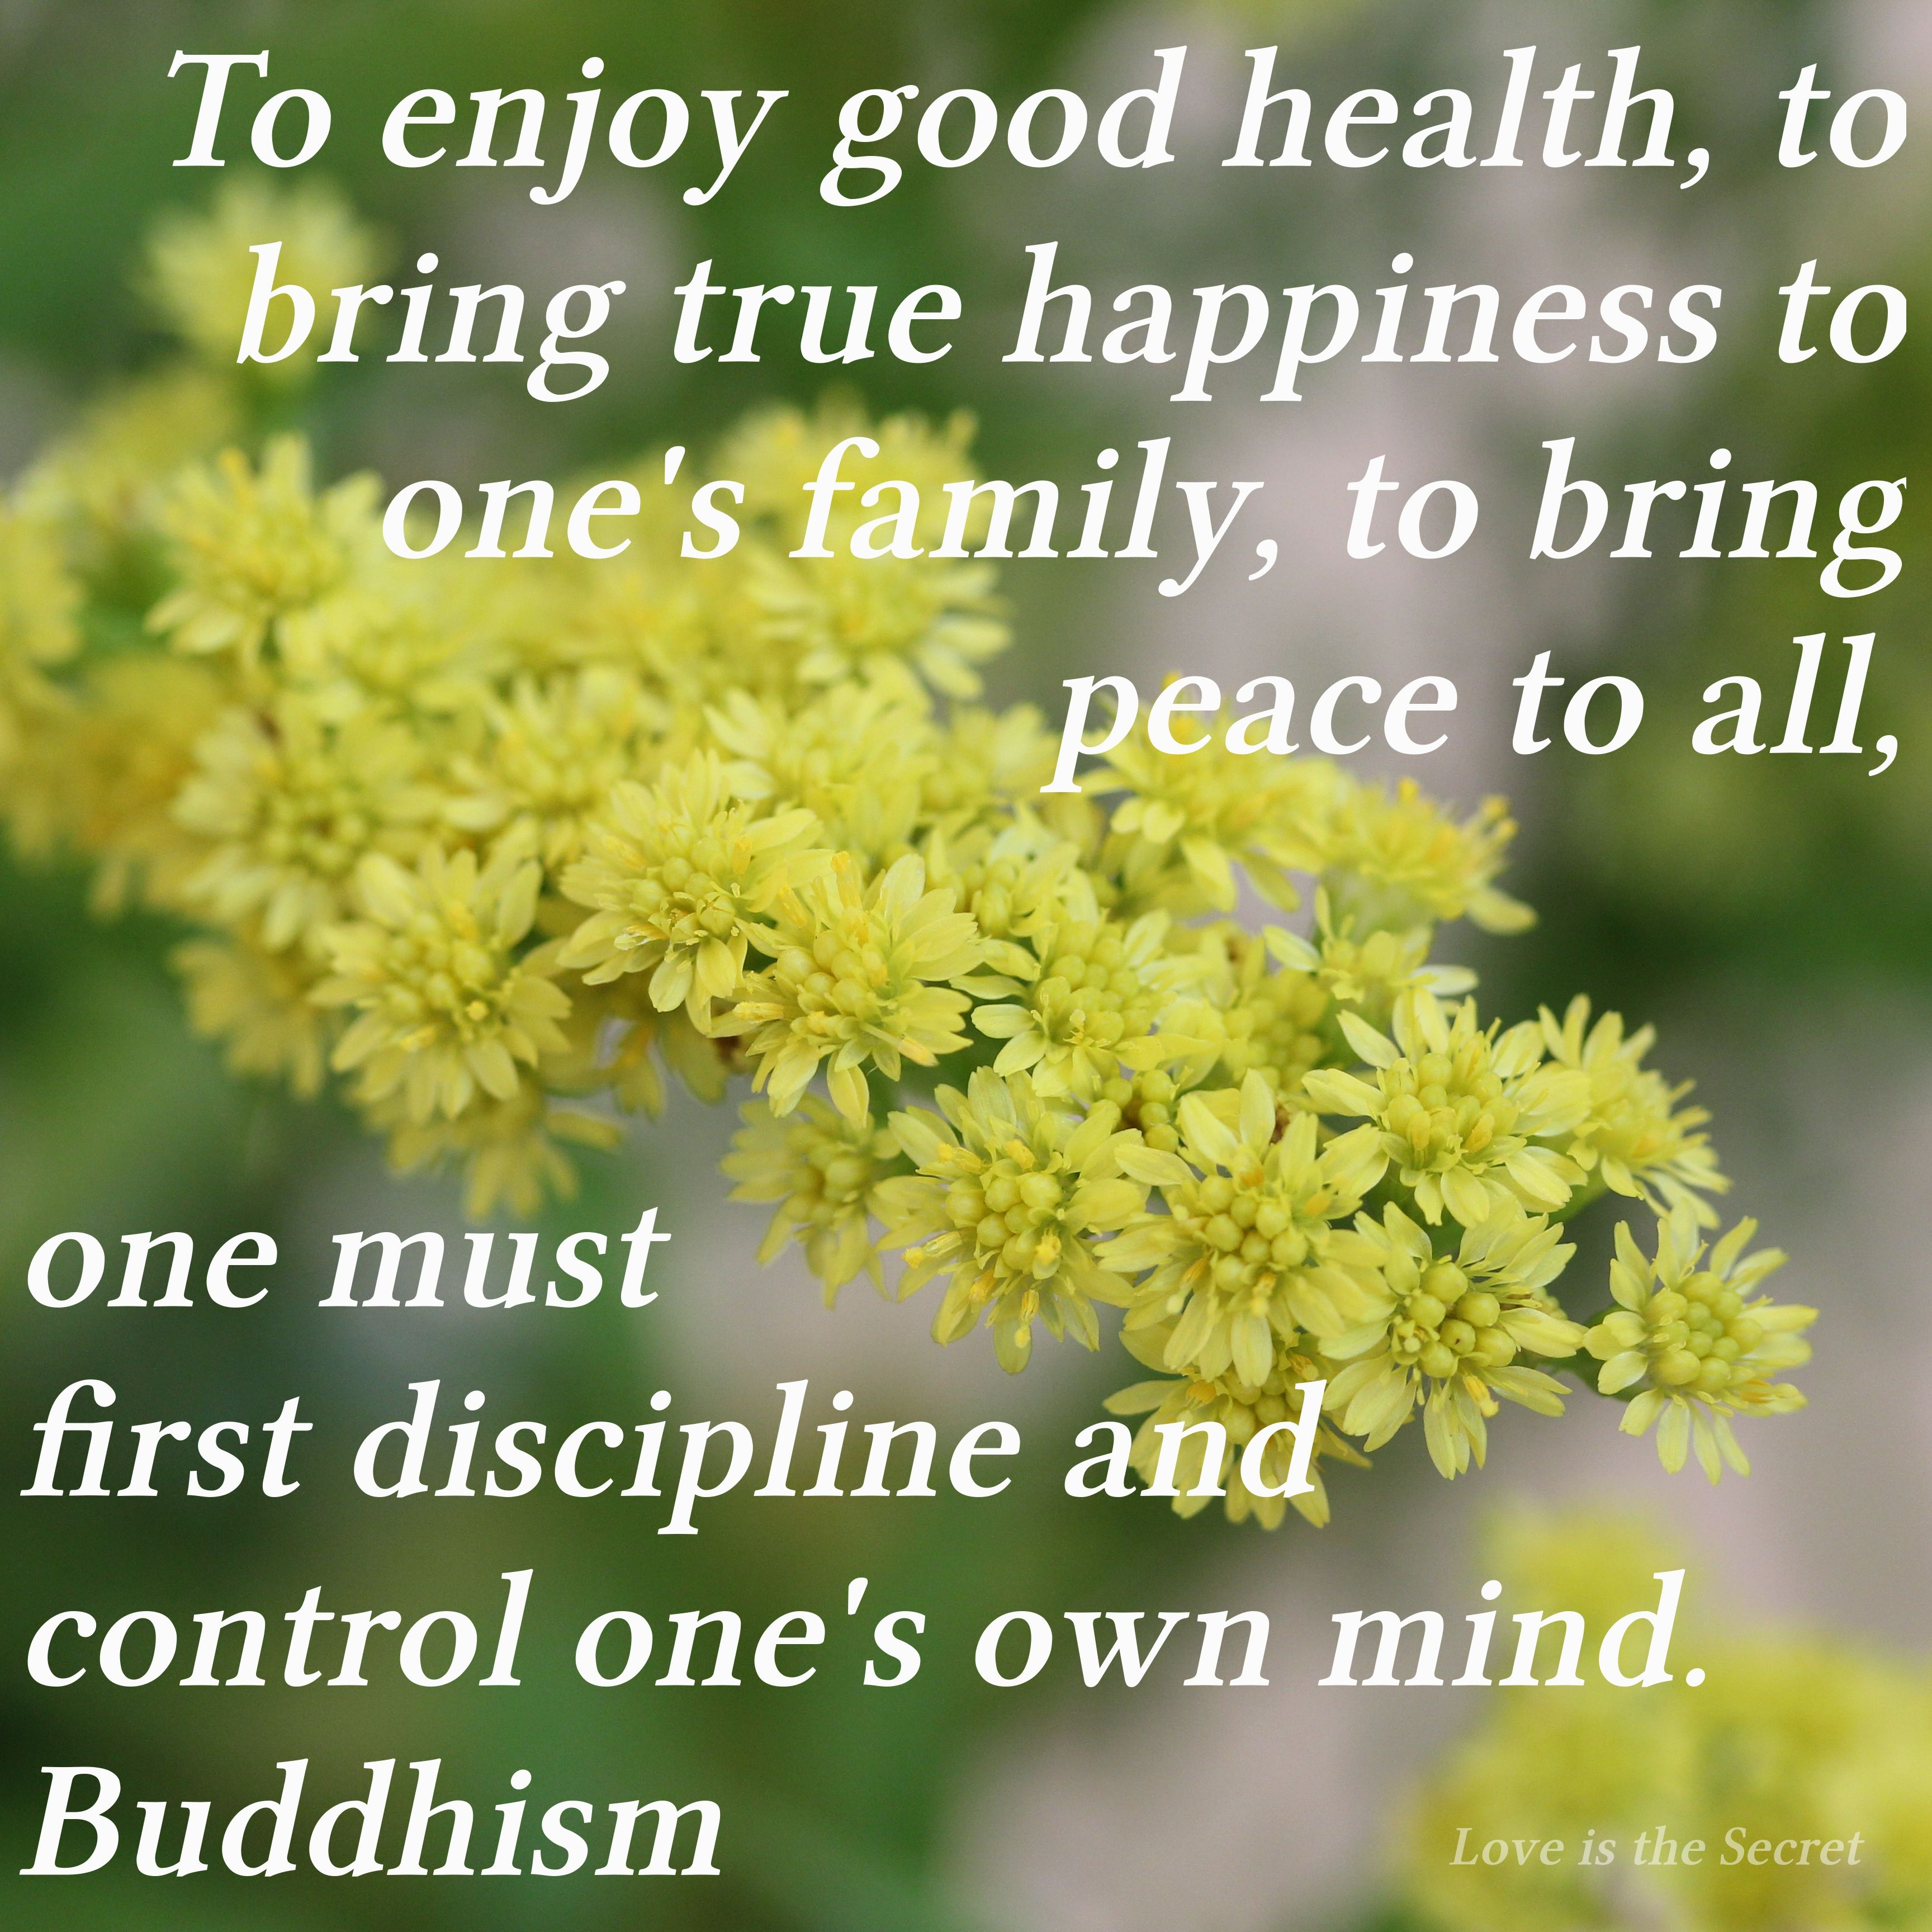 Buddha Family Quotes: Pin By Love Is The Secret On Buddhism